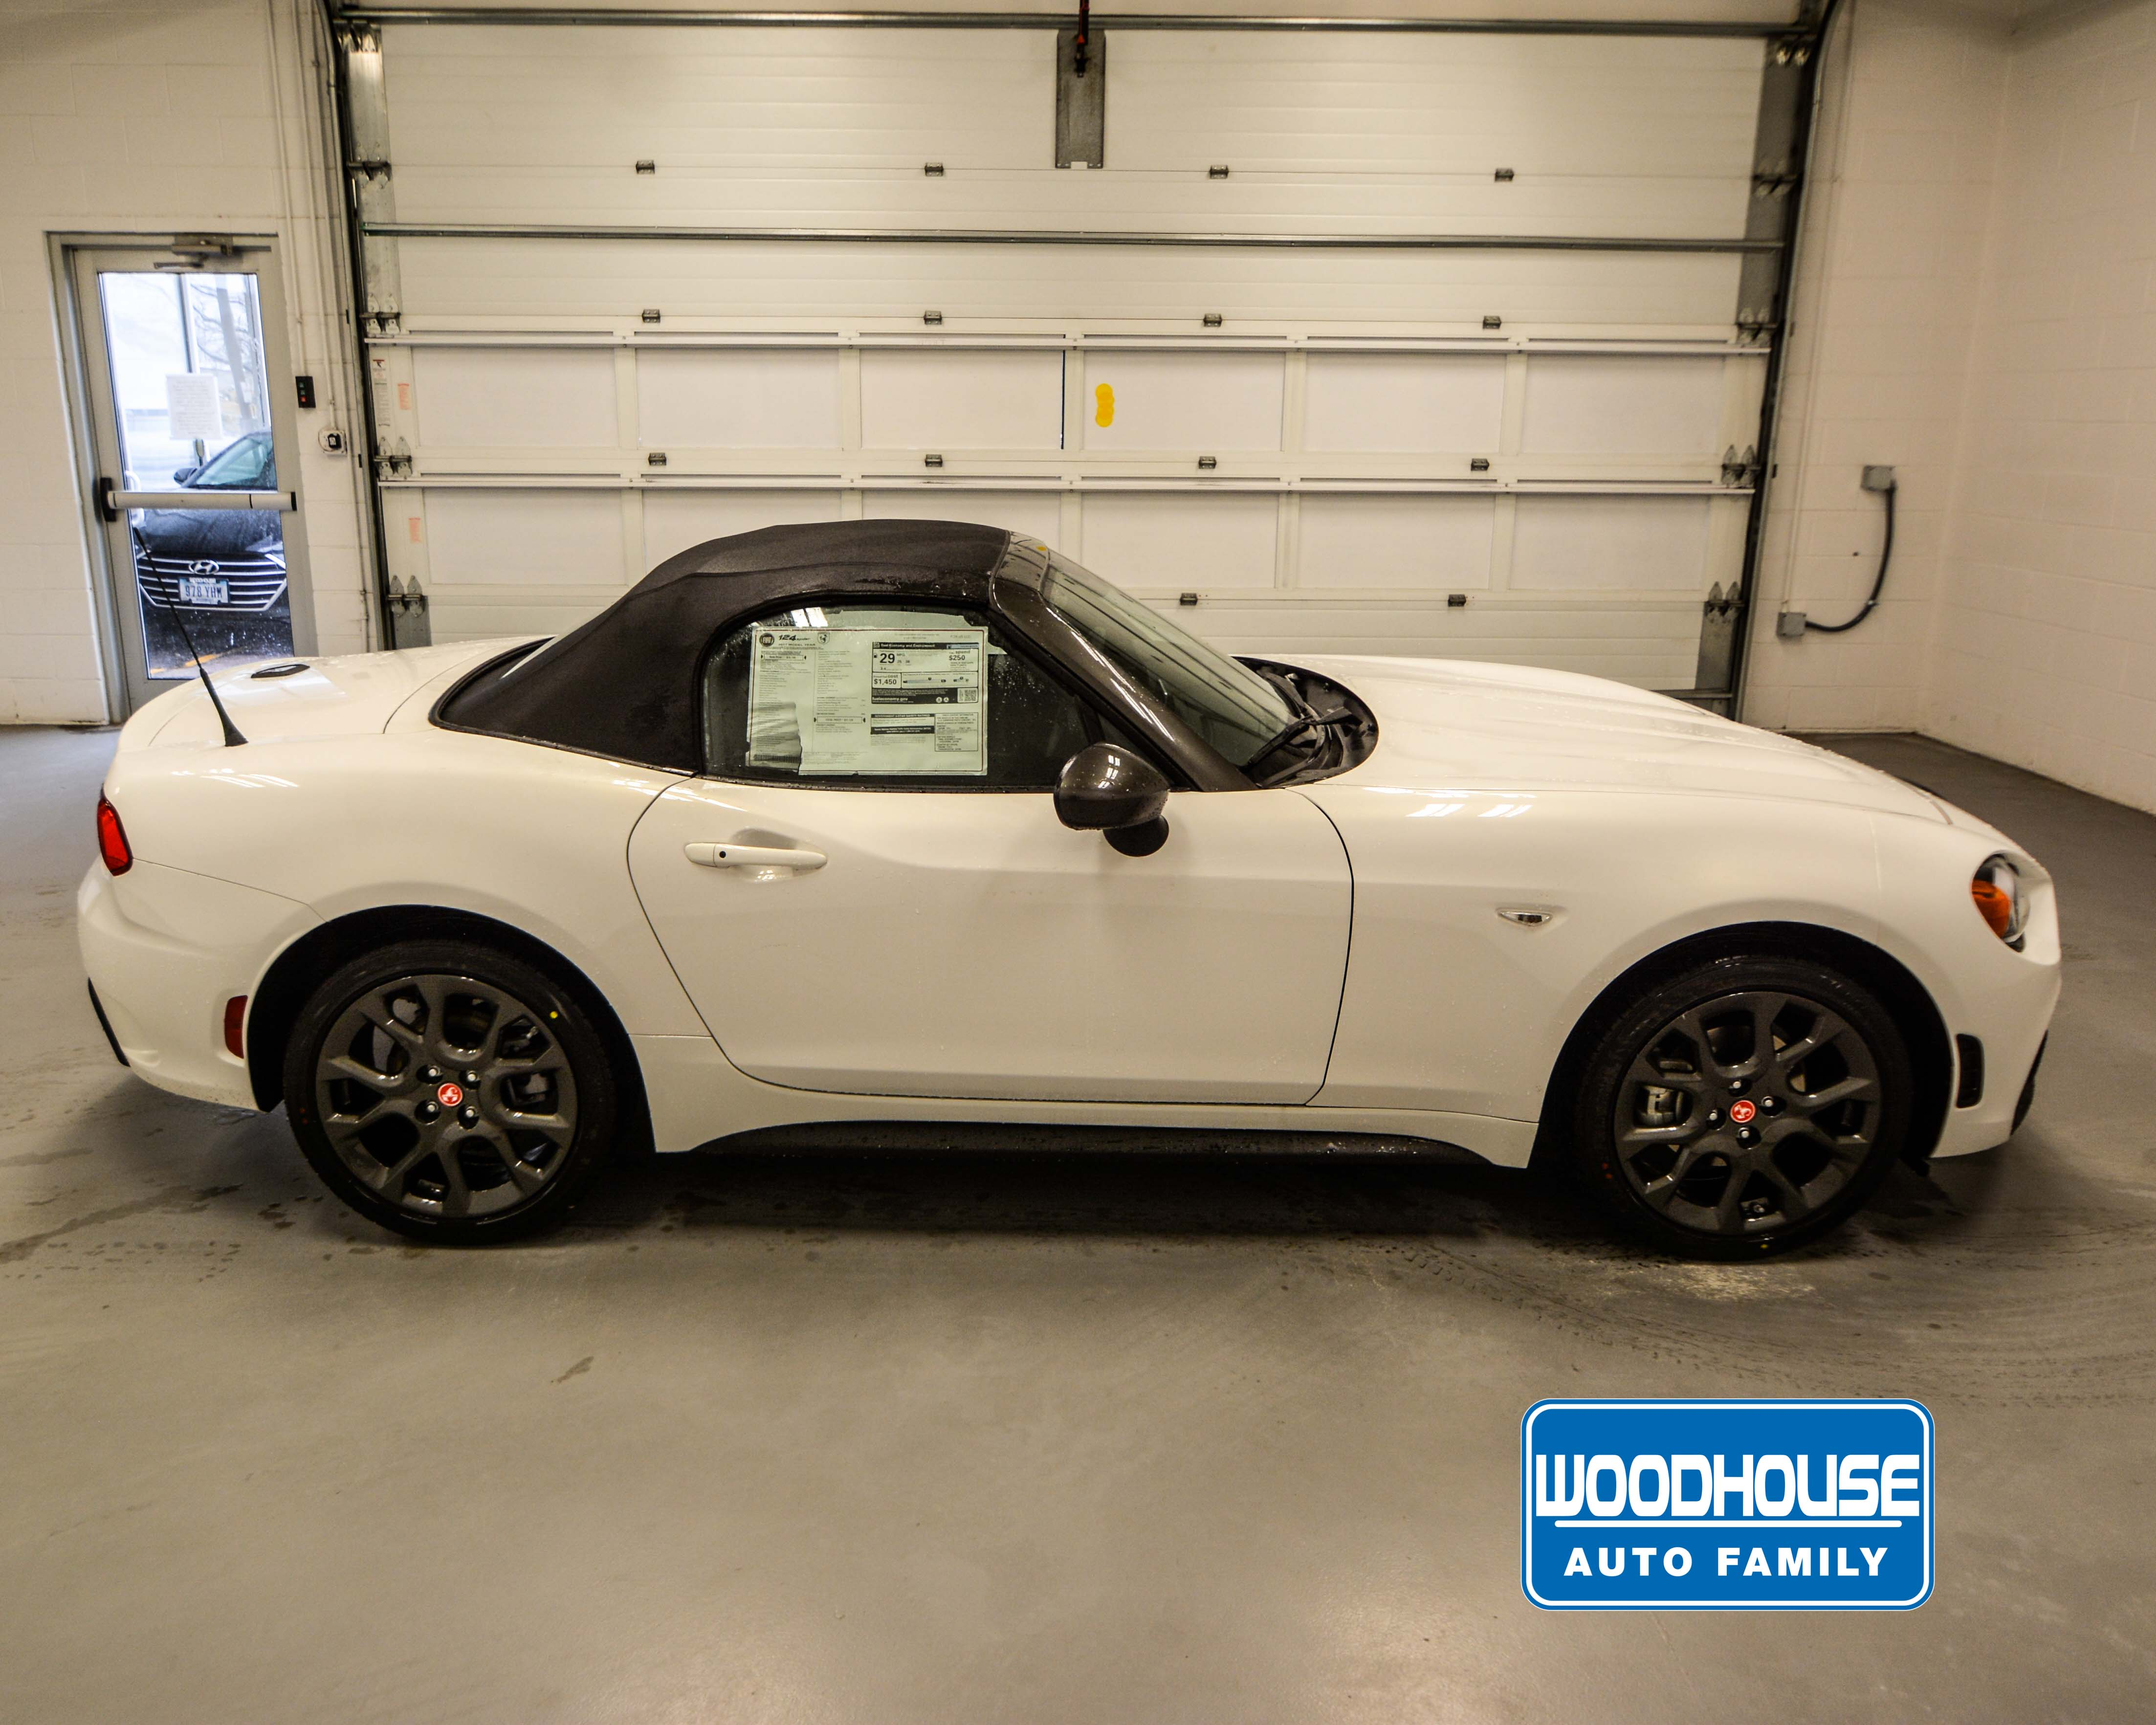 Fiat Spider For Sale Woodhouse Auto